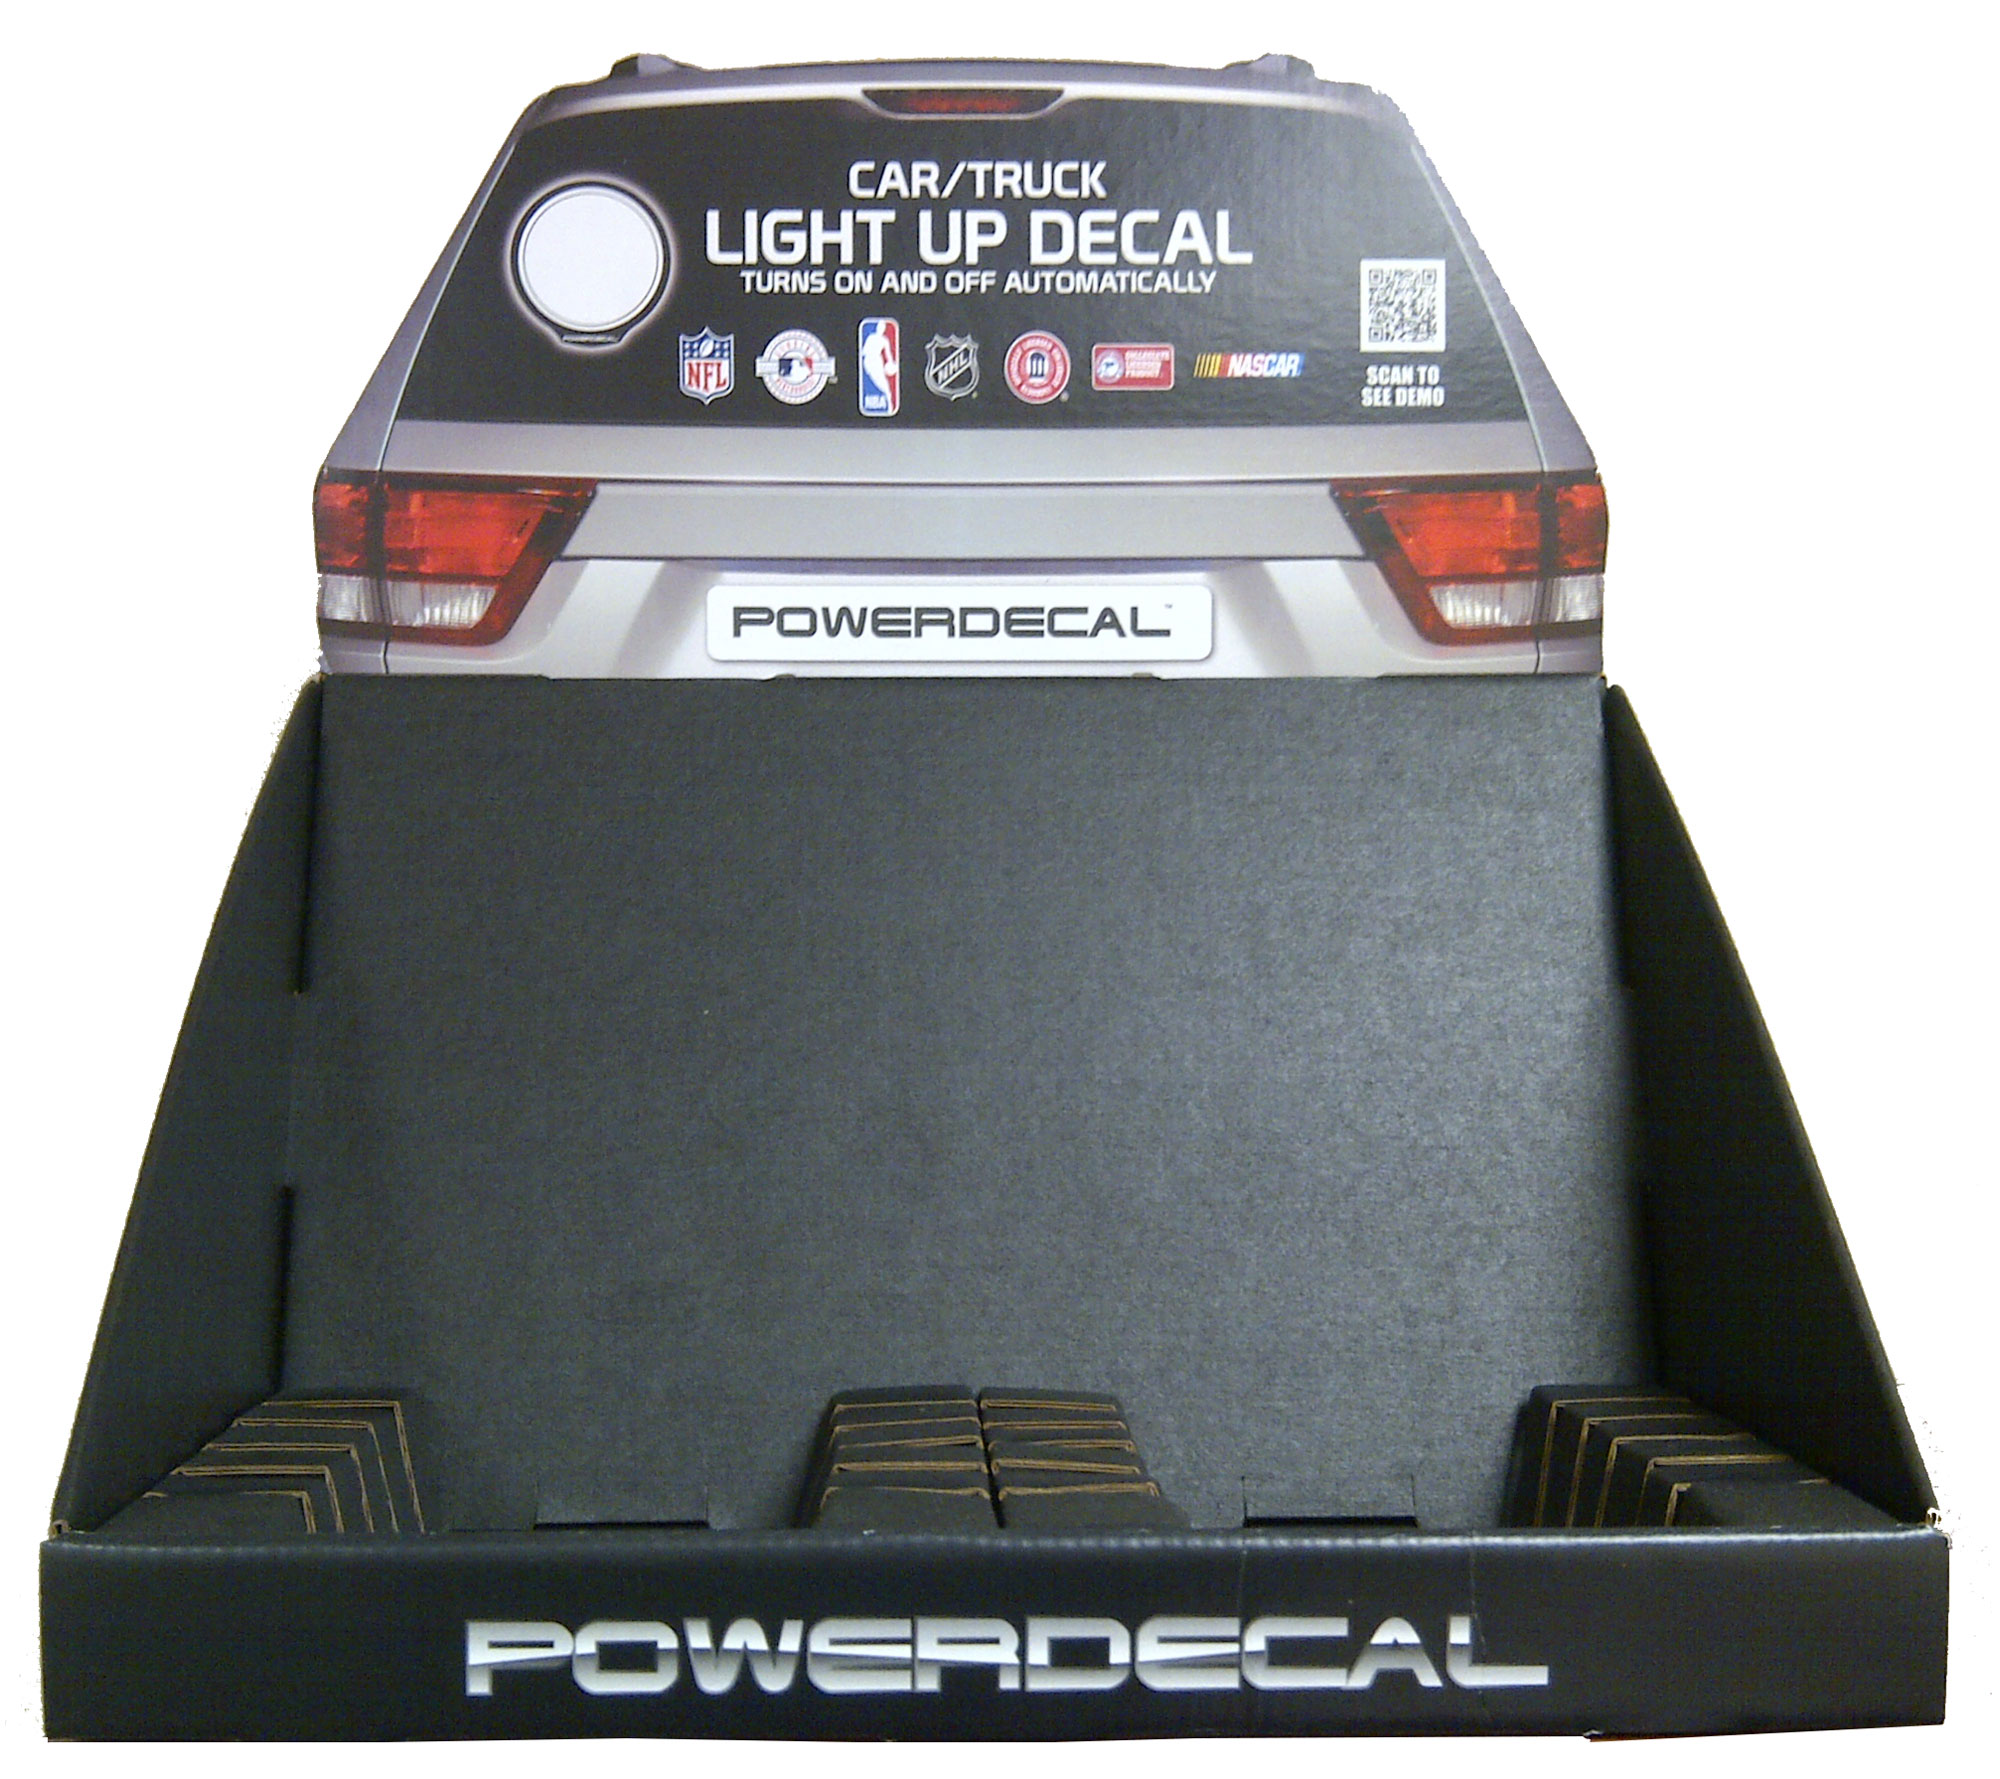 PWRDISPLAY PowerDecal Point of Purchase Display Car/ Truck Light Up